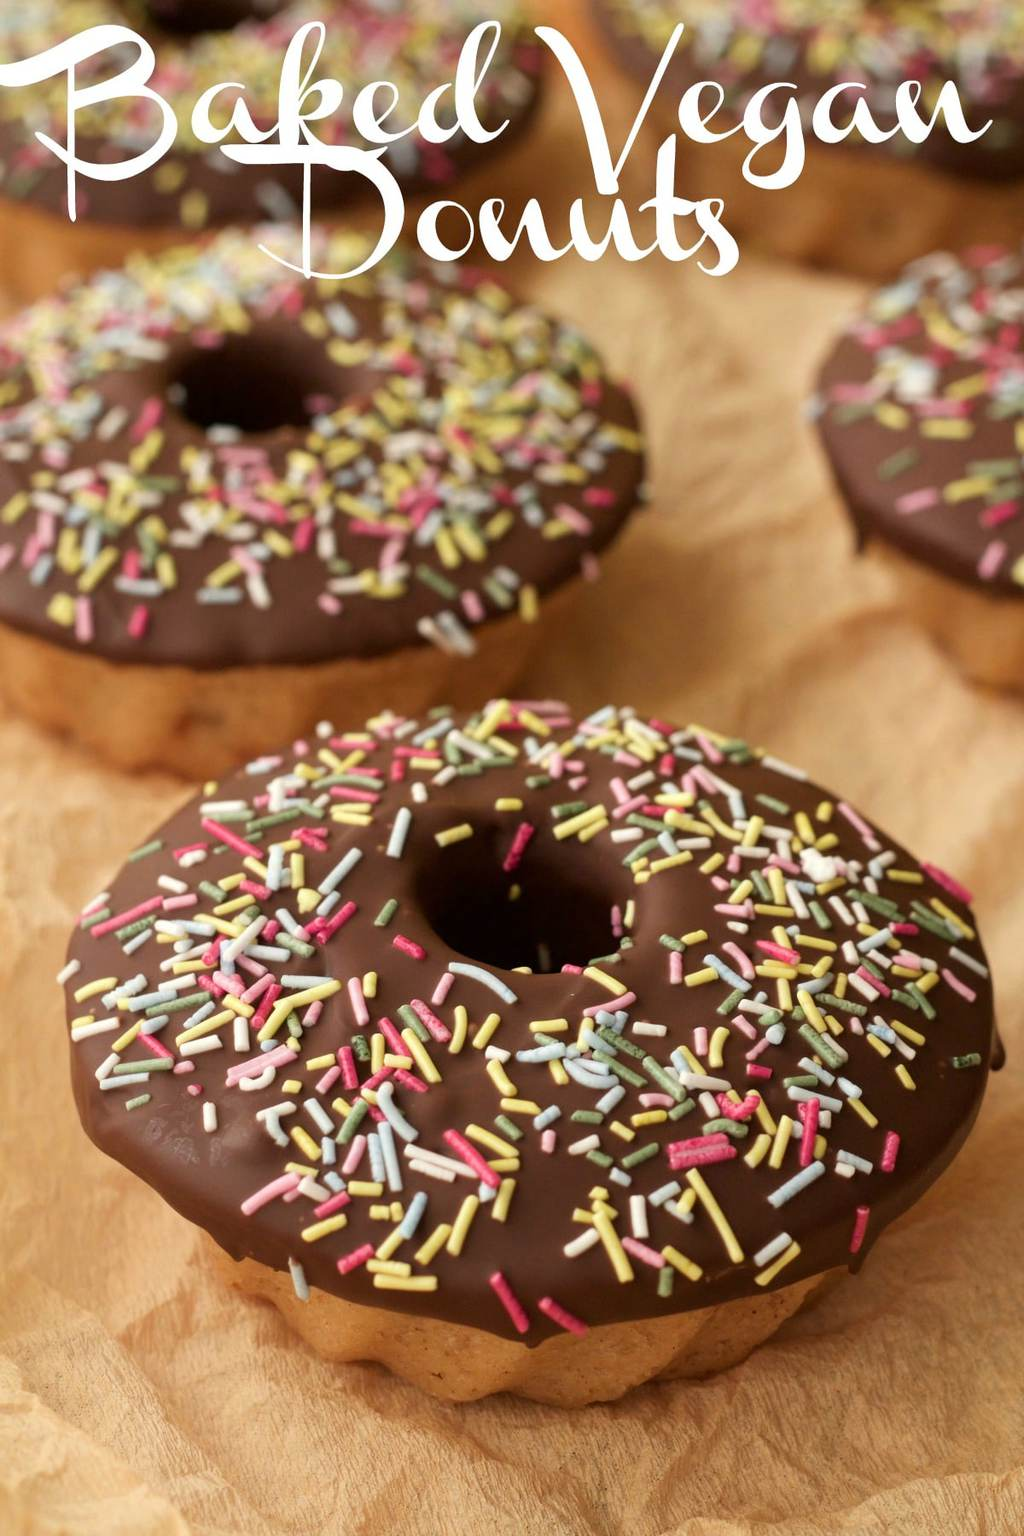 Vegan donuts topped with chocolate and sprinkles.